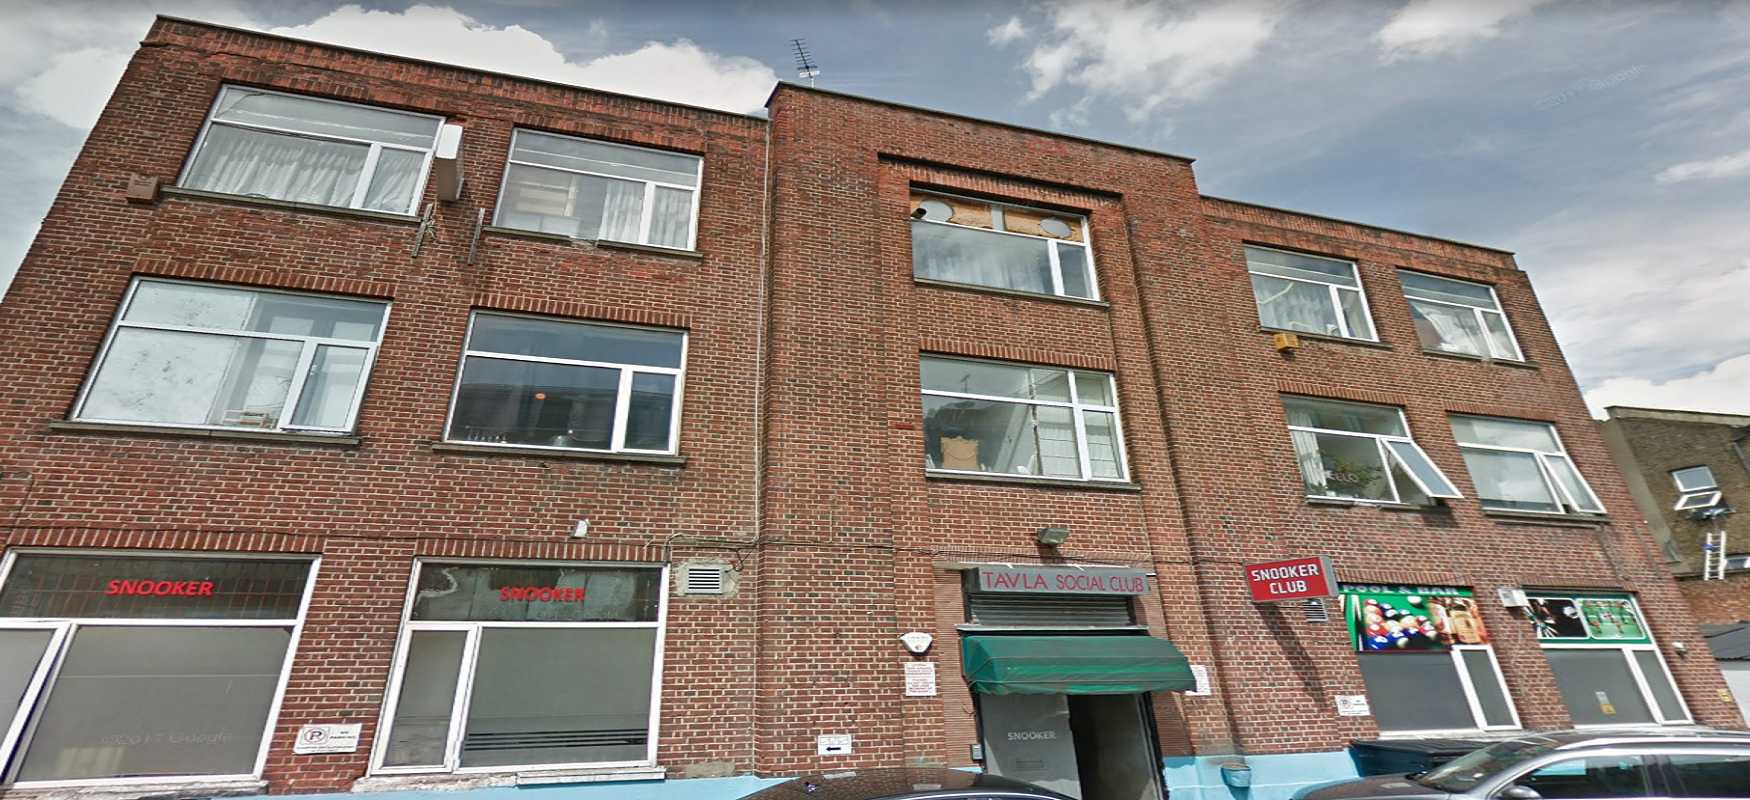 COMMERCIAL B1 BUILDING 4,560 Sq. Ft (423.61 Sq M) – 14,520 Sq. Ft (1,348 Sq M) TO BE LET